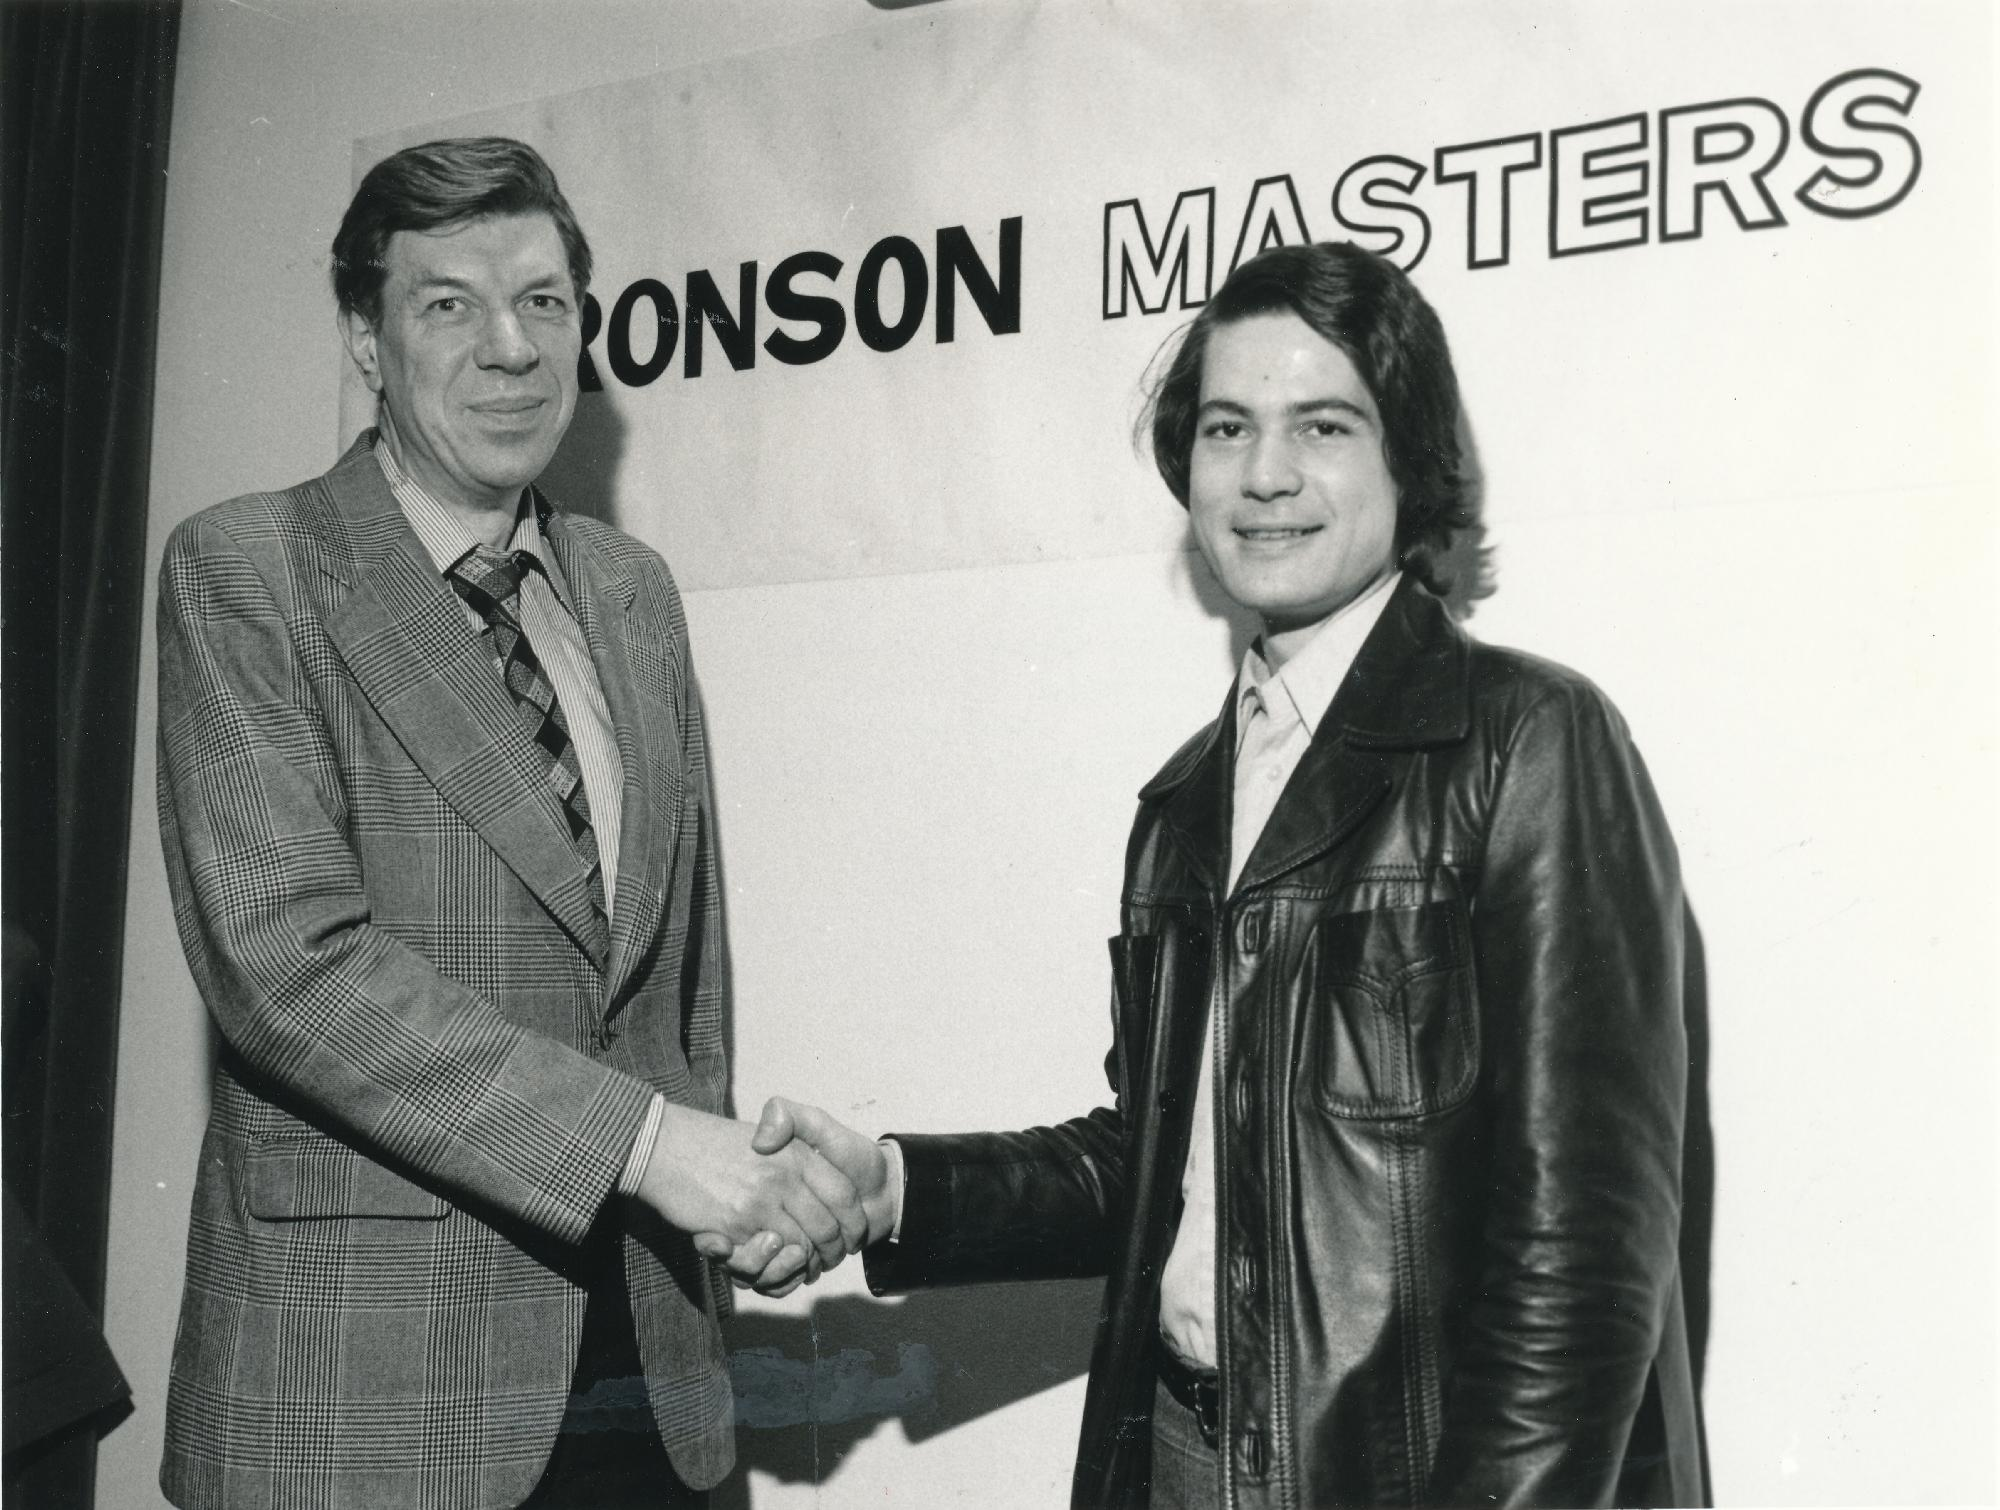 Joint winners of the 1978 Aaronson Masters : Michael Franklin and IM Aldo Haik